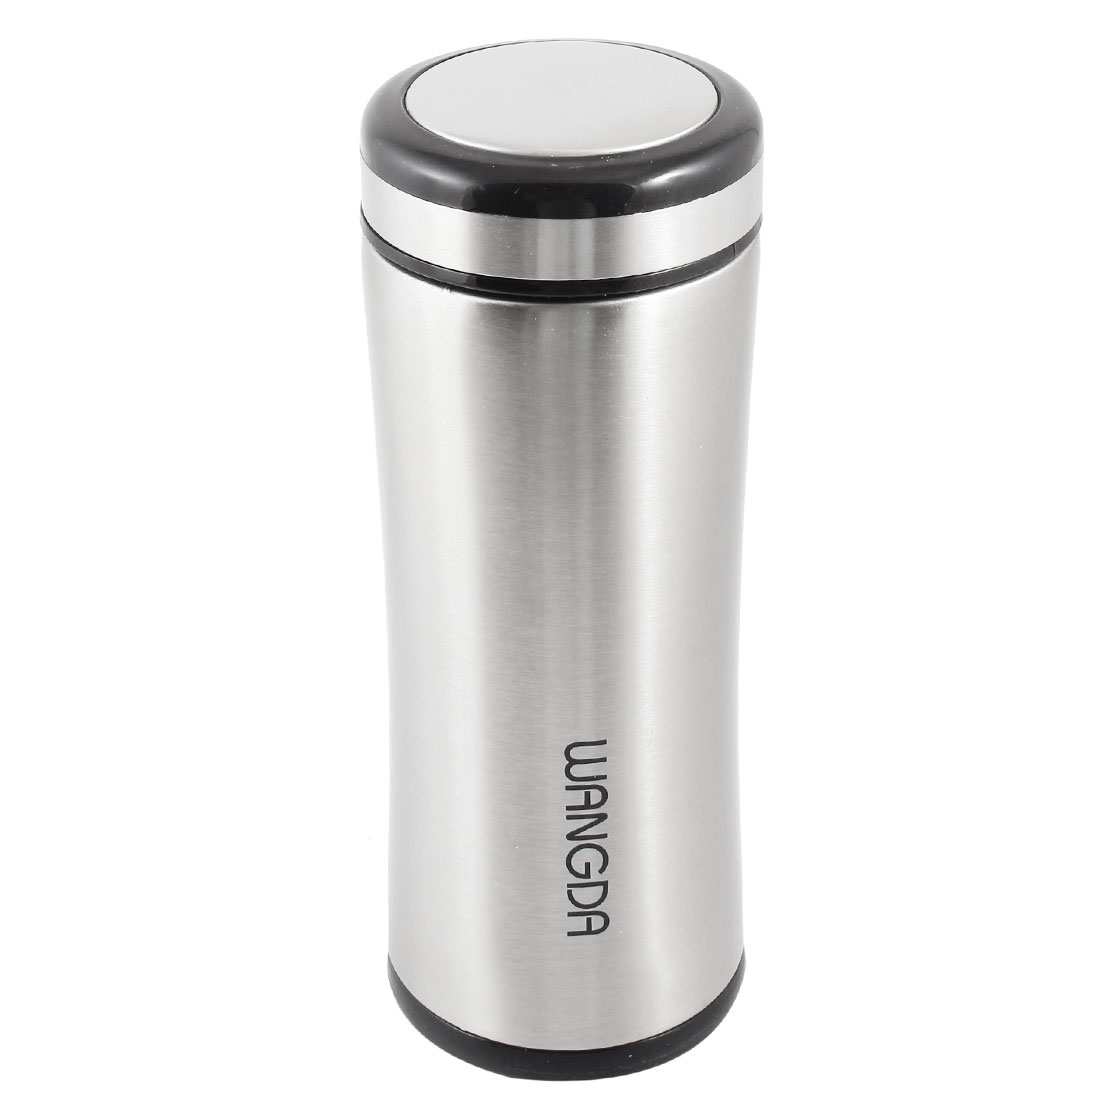 Stainless Steel Travel Outdoor Drink Cup Vacuum Water Bottle Silver Tone 500ml